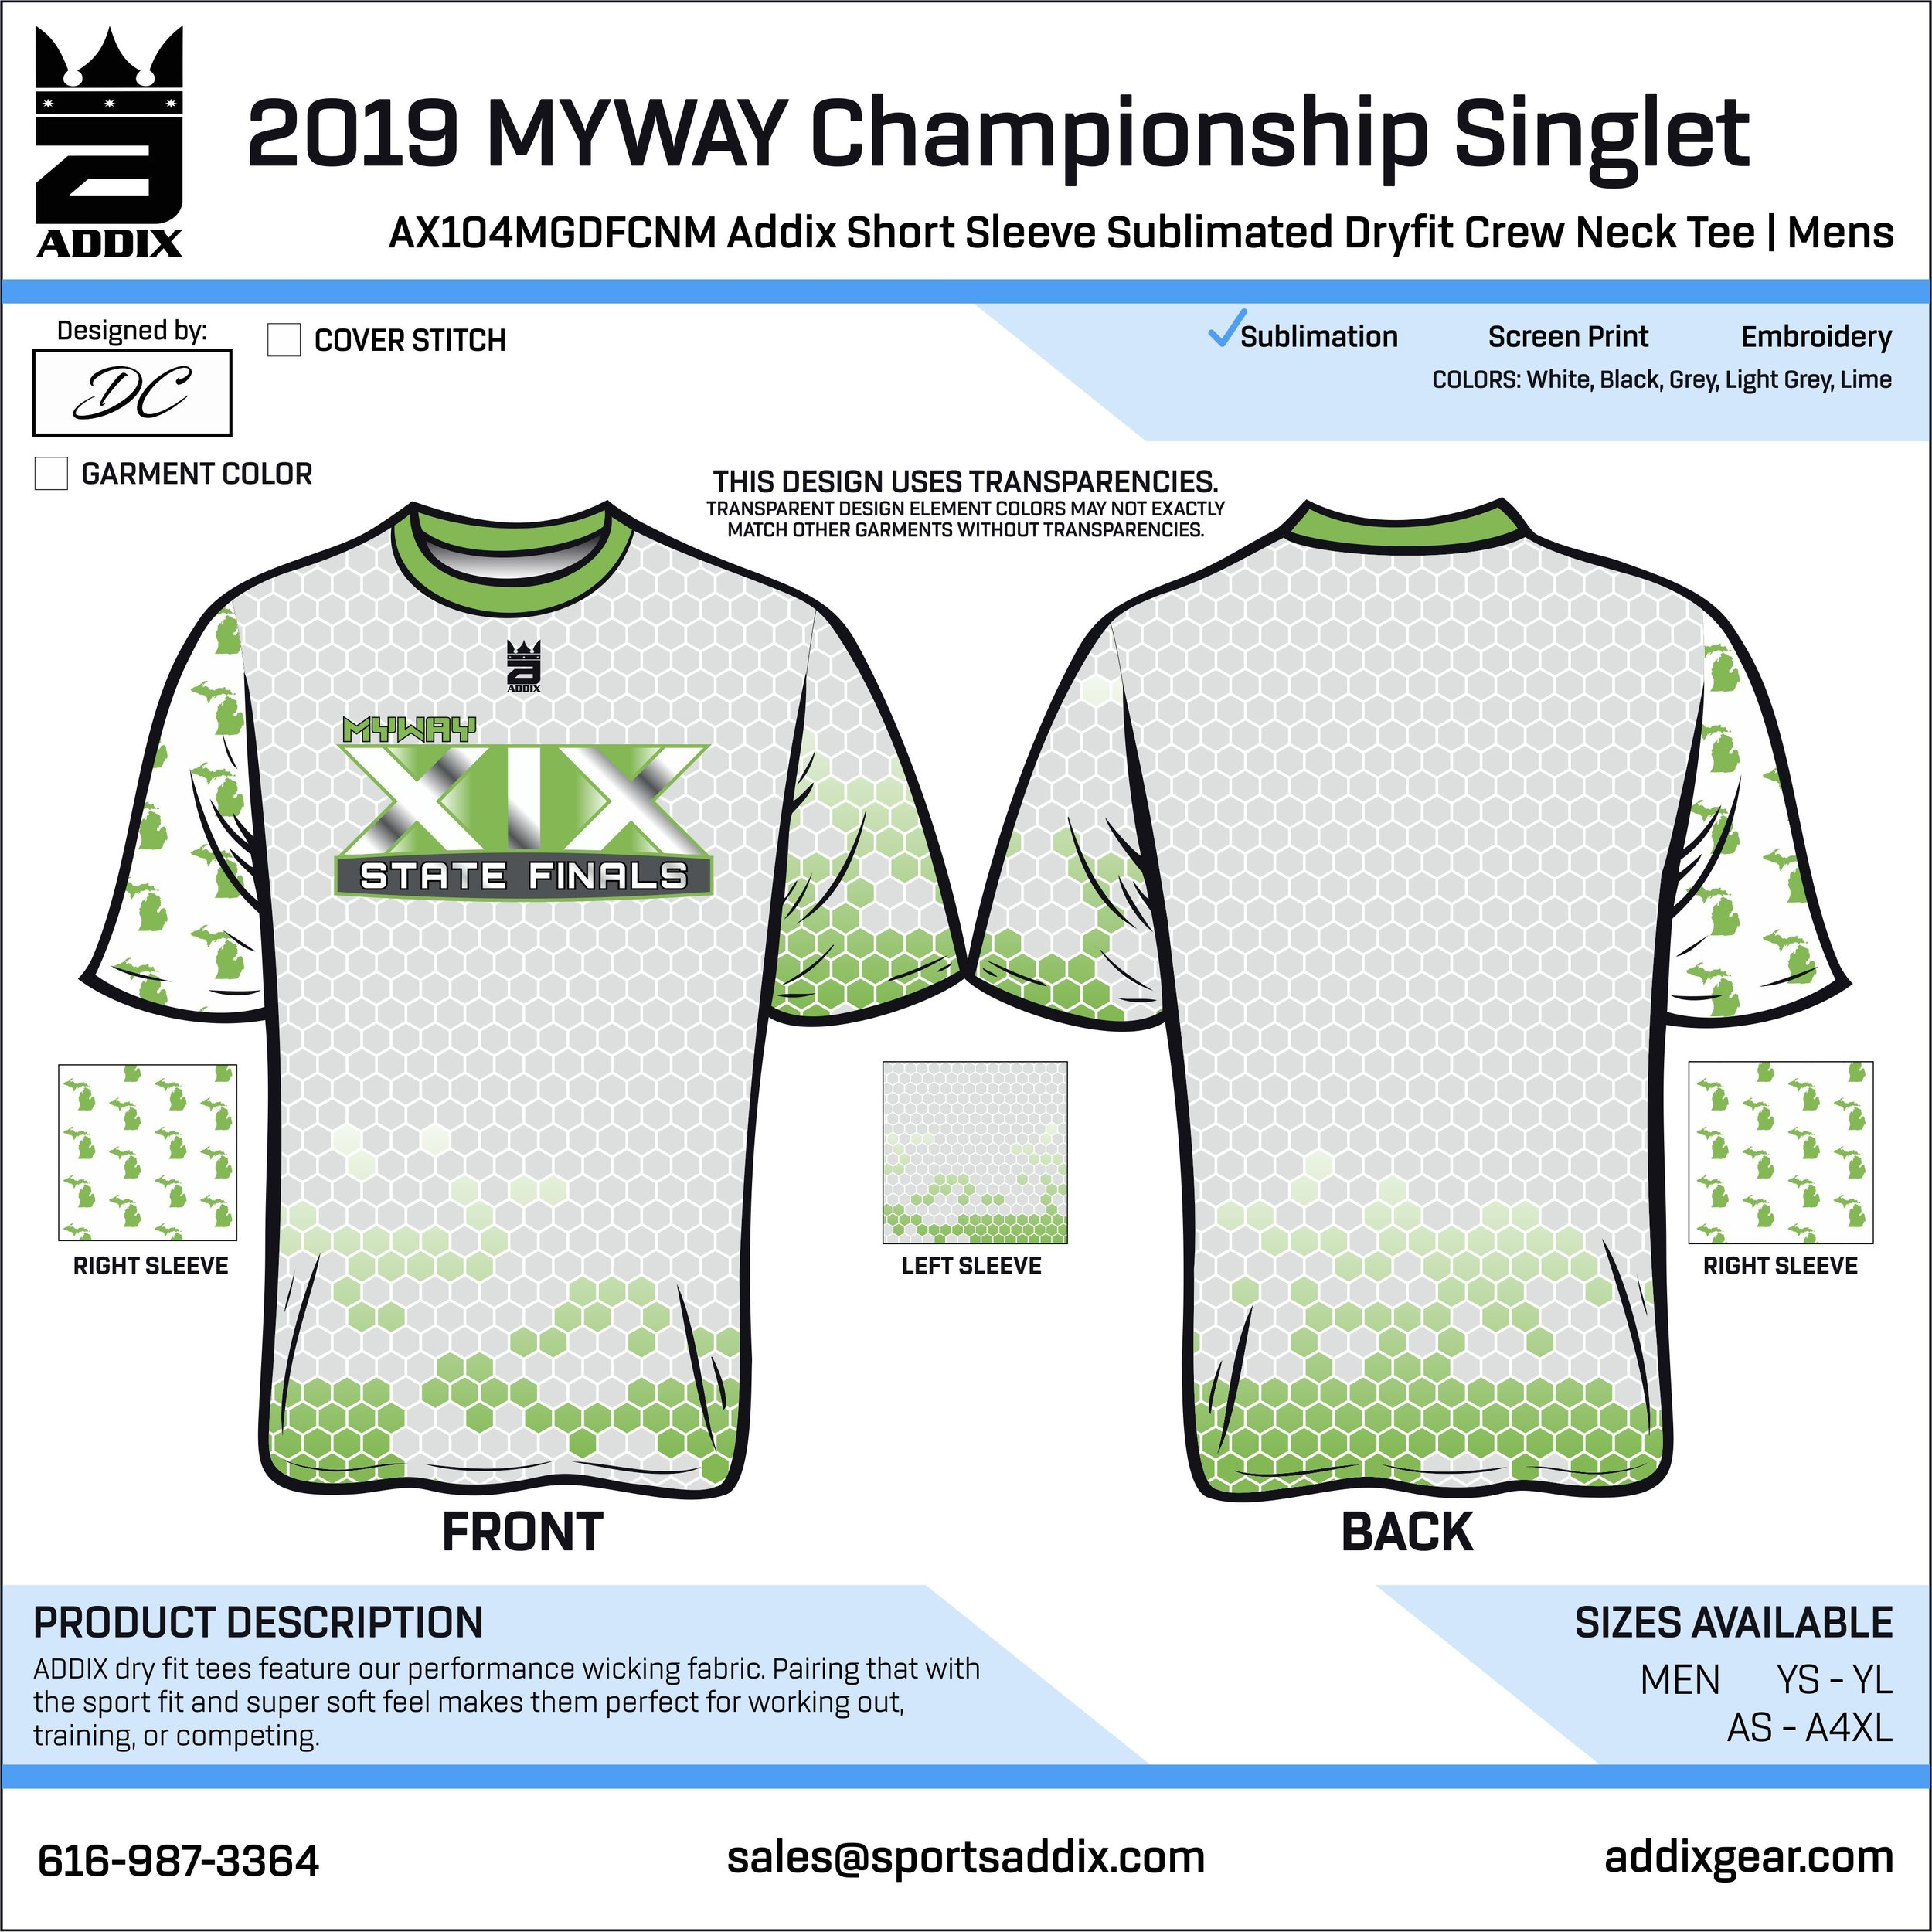 2019 MYWAY Championship Singlet_2019_2-13_DC_SS DF Tee.jpg